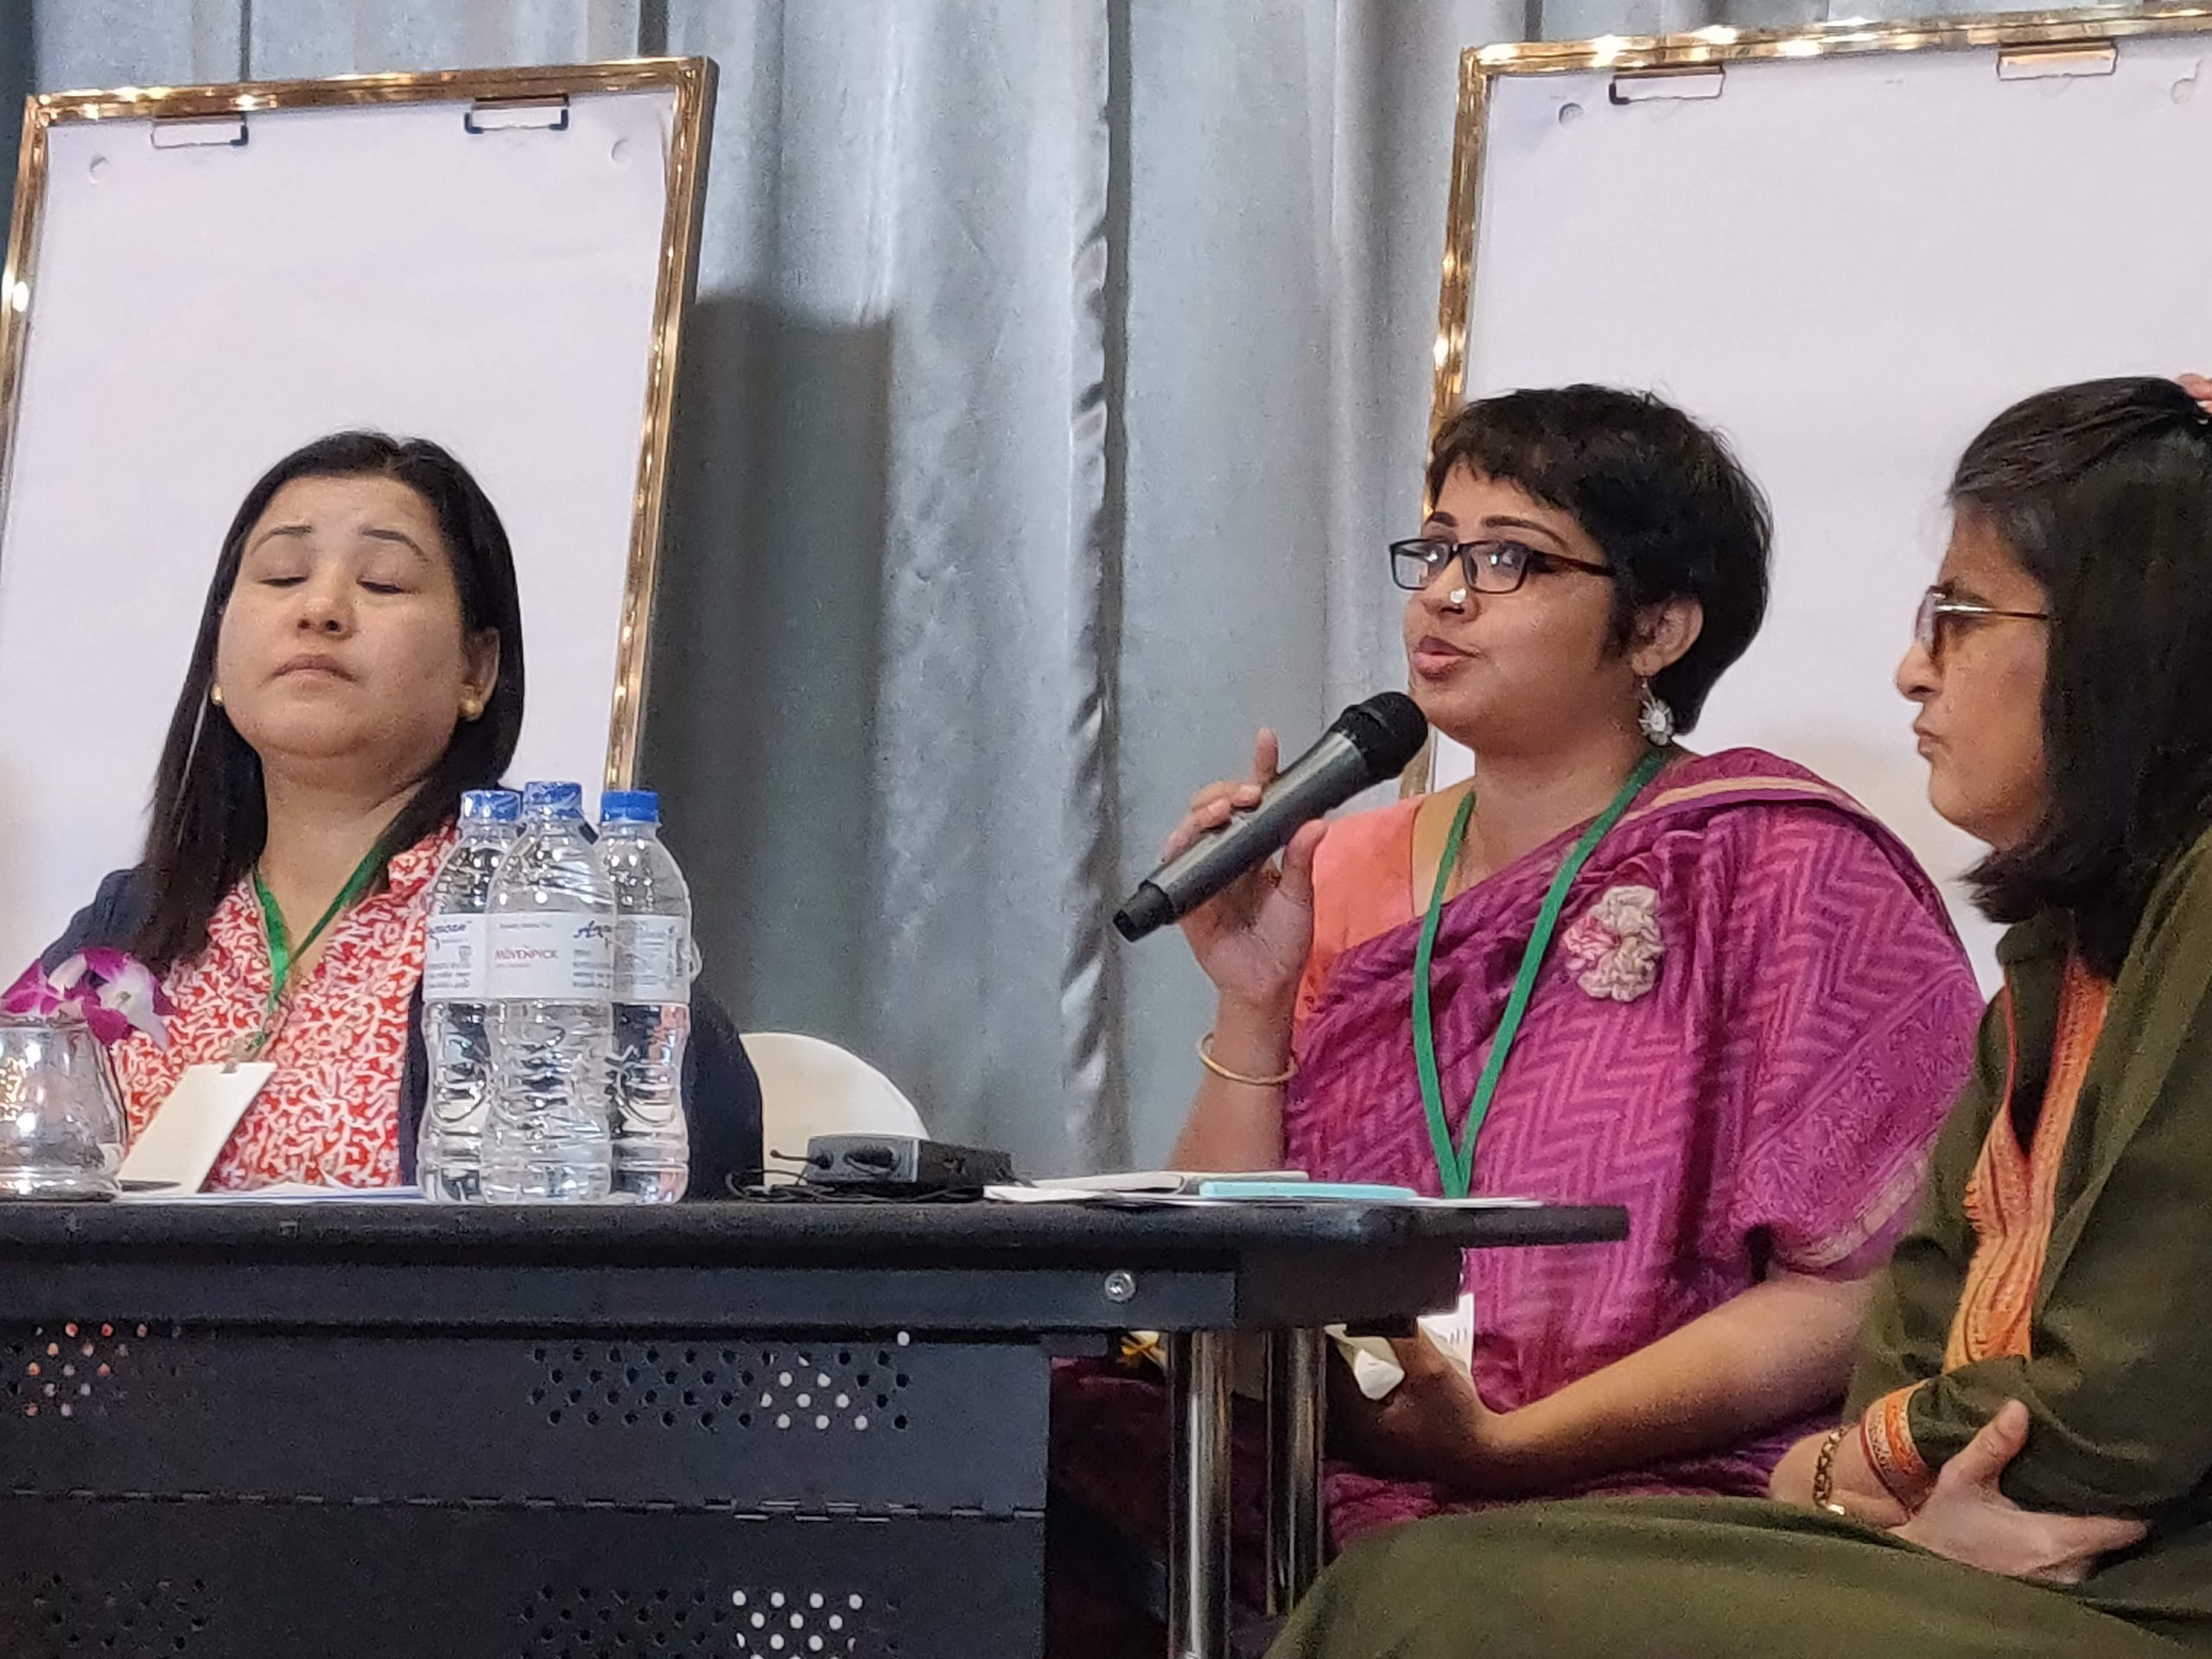 srinidhi raghavan holding a mic in front of her face. she is wearing a pink saree and and ID card with a blue band. beside her sit renu addlakha and pratima gurung. behind the three of them are two white boards